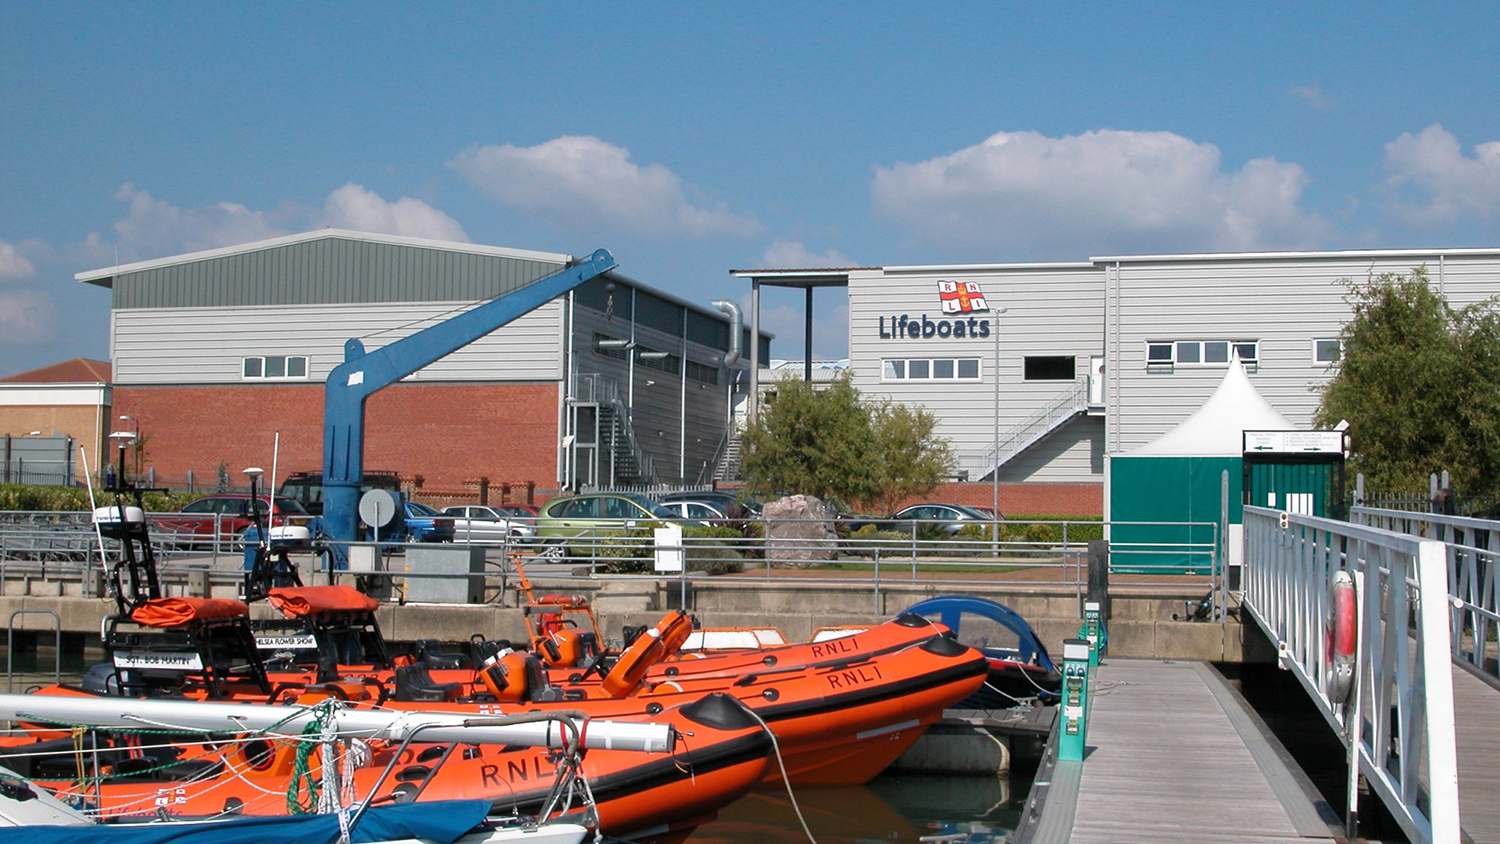 The RNLI Inshore Lifeboat Centre at Cowes on the Isle of Wight